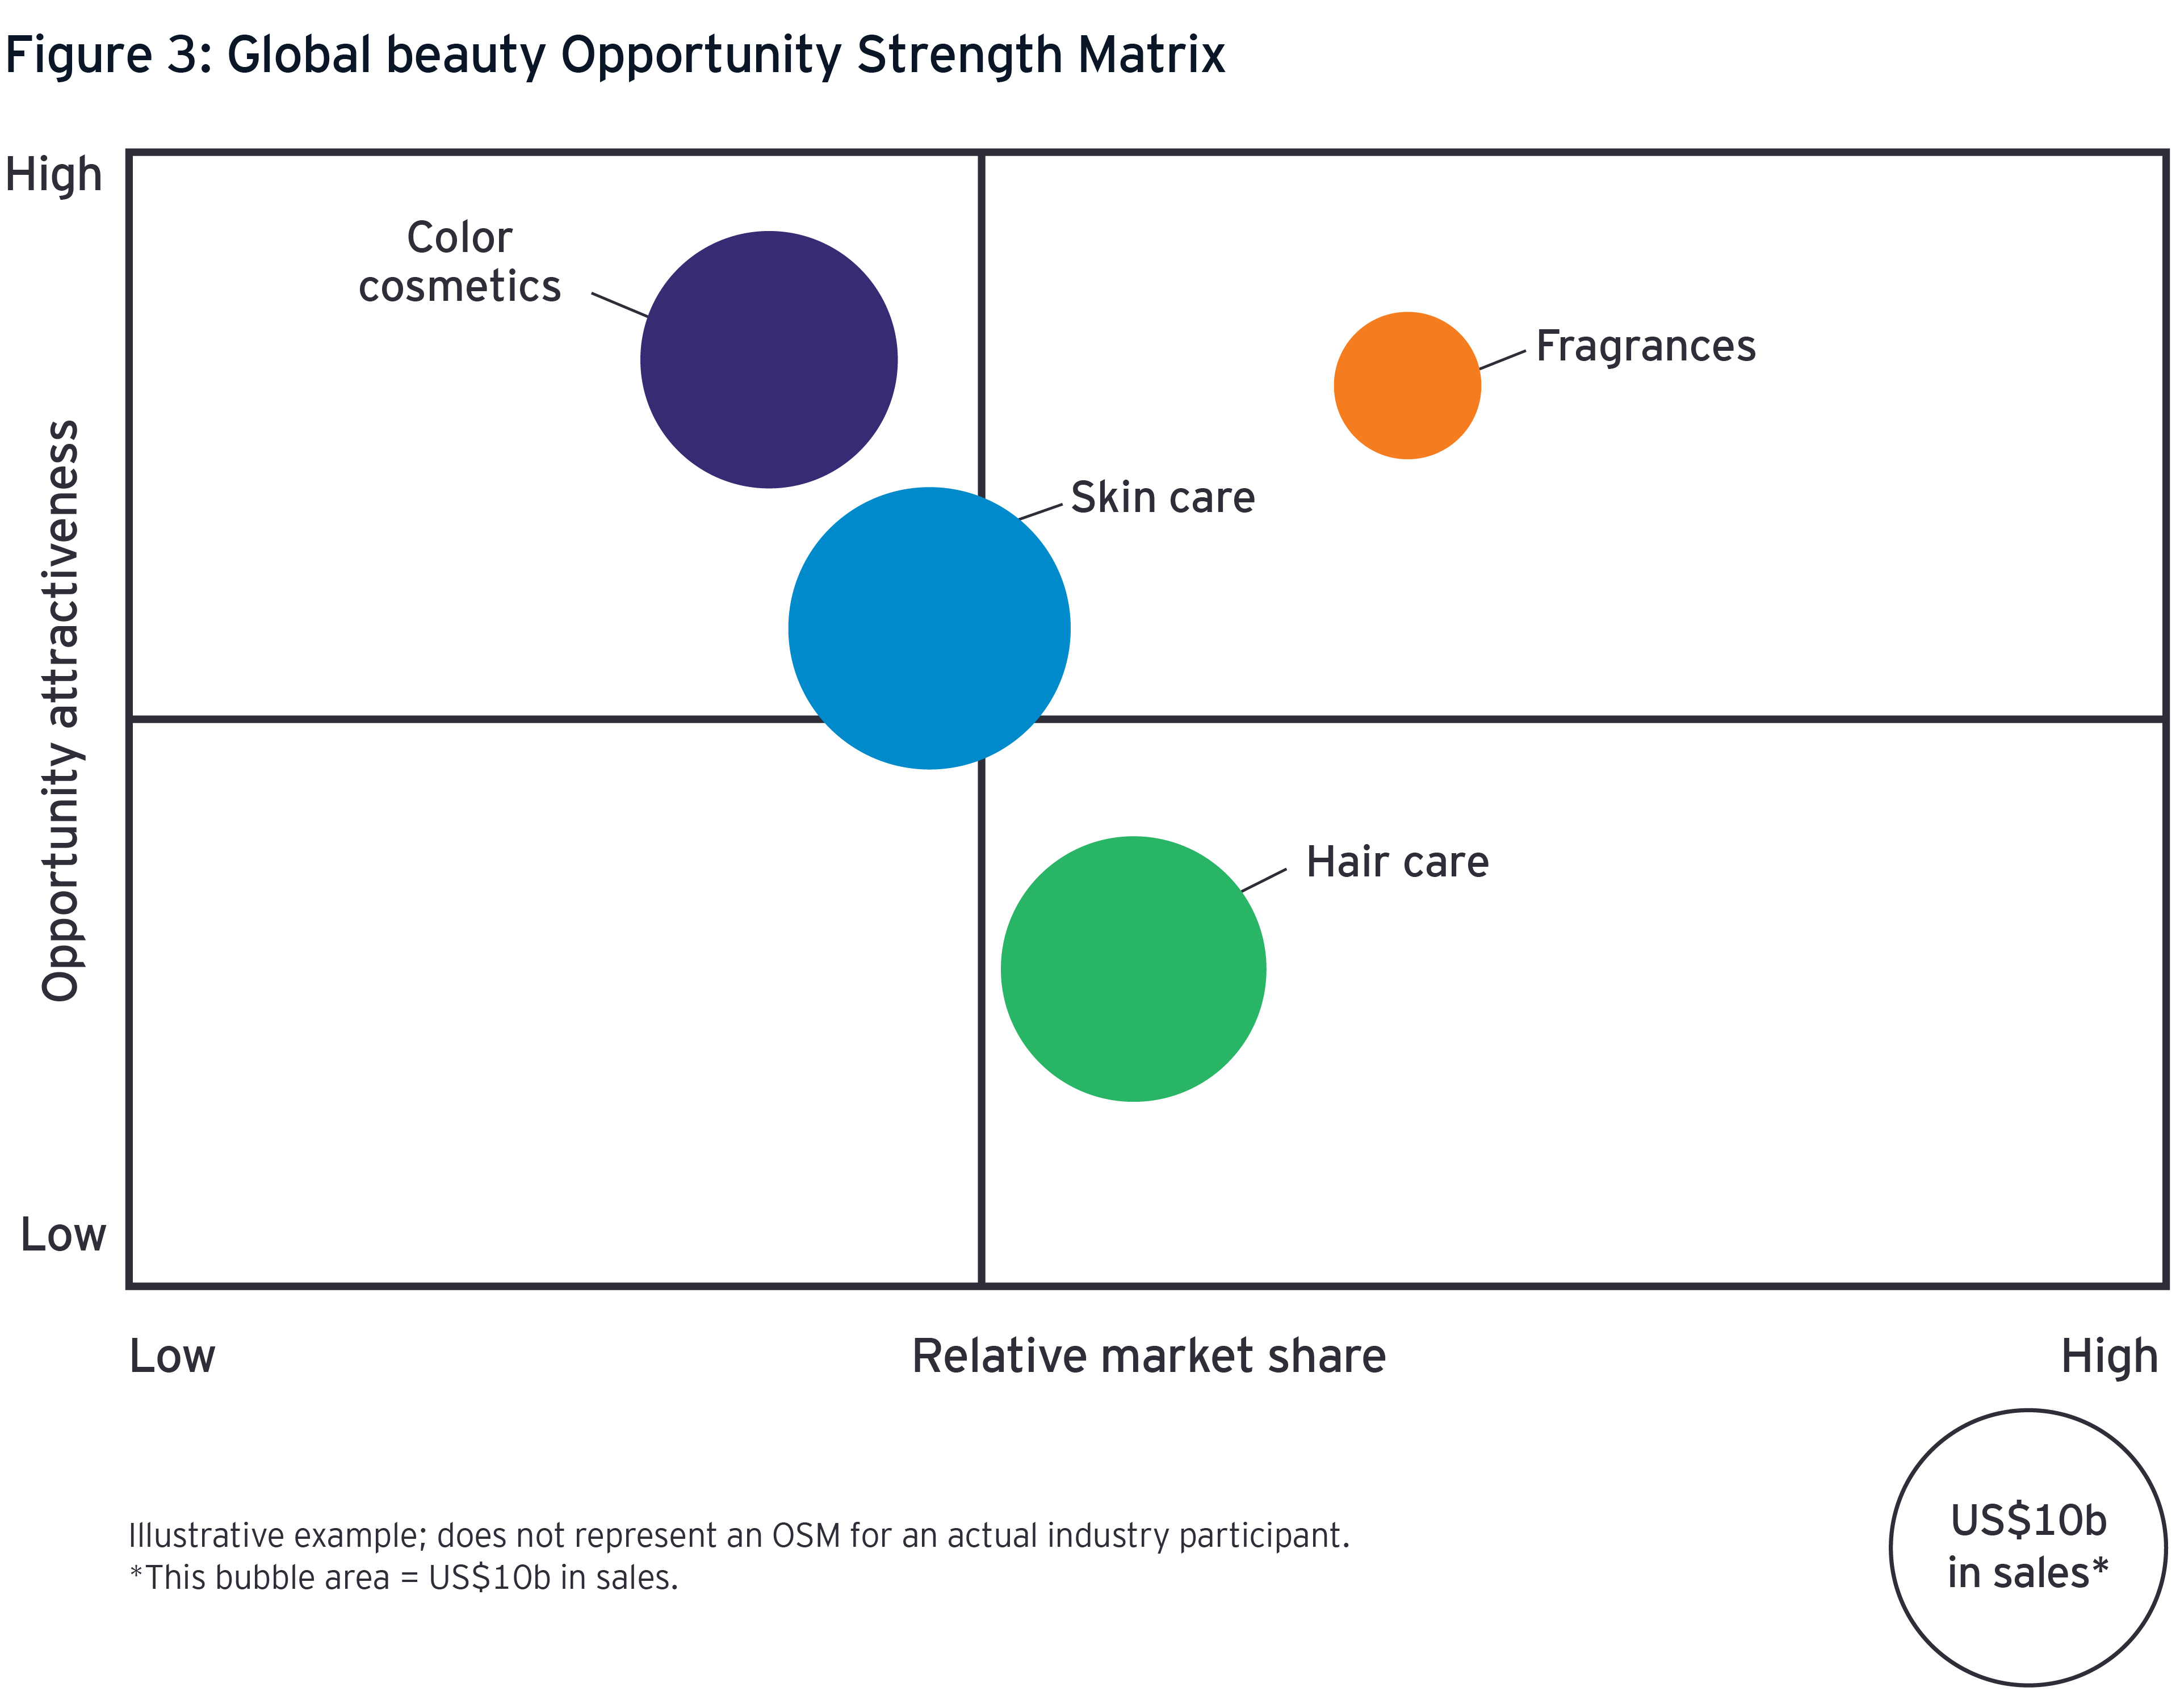 Global beauty opportunity strength matrix graph